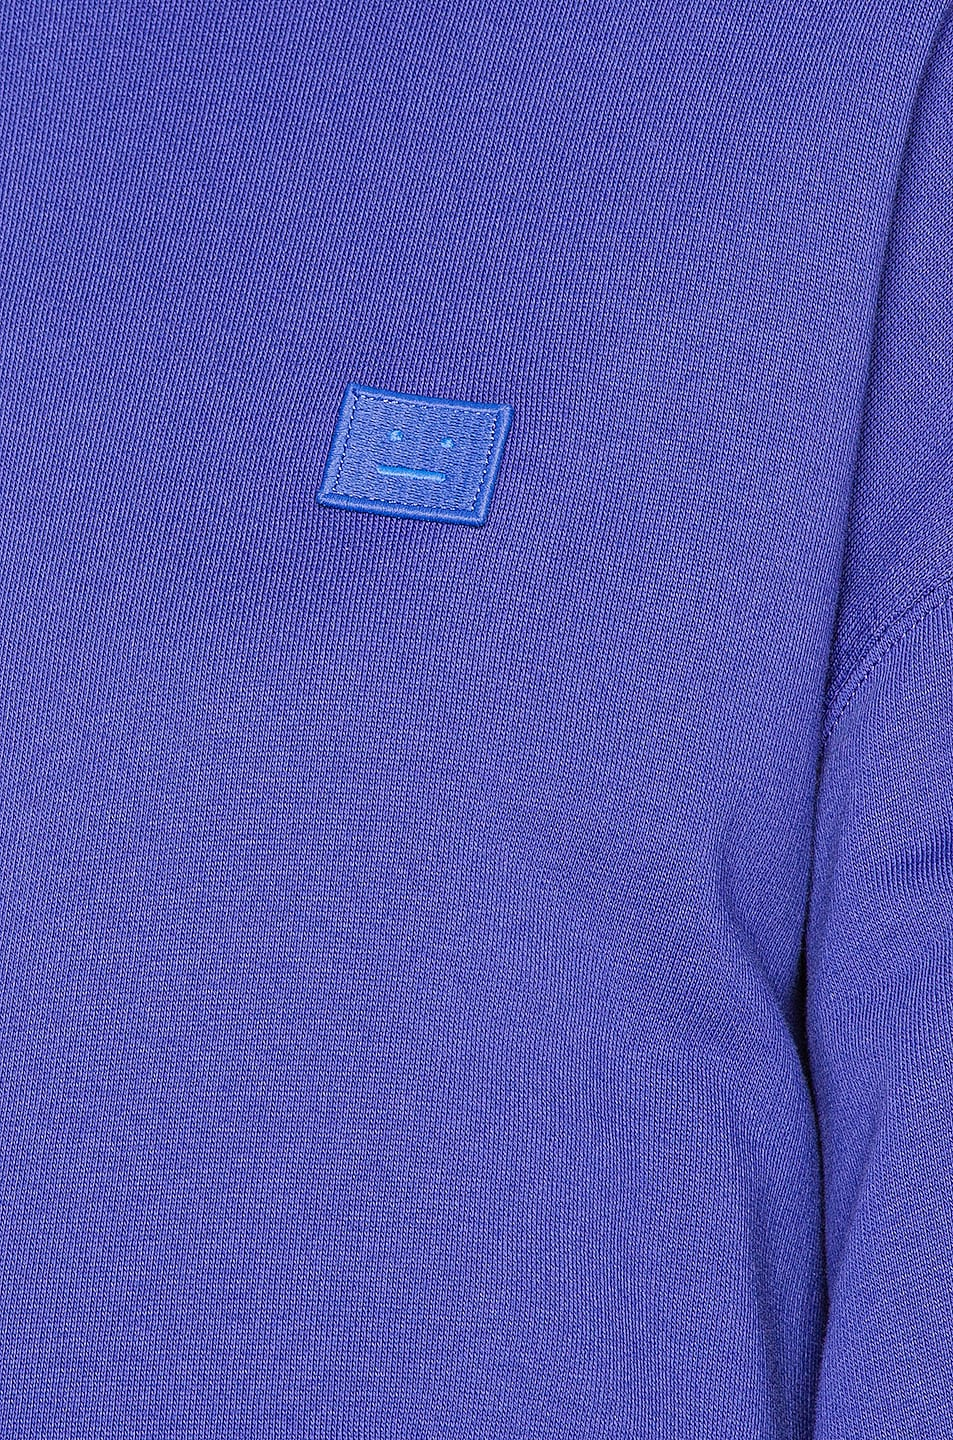 Image 5 of Acne Studios Face Sweatshirt in Electric Blue